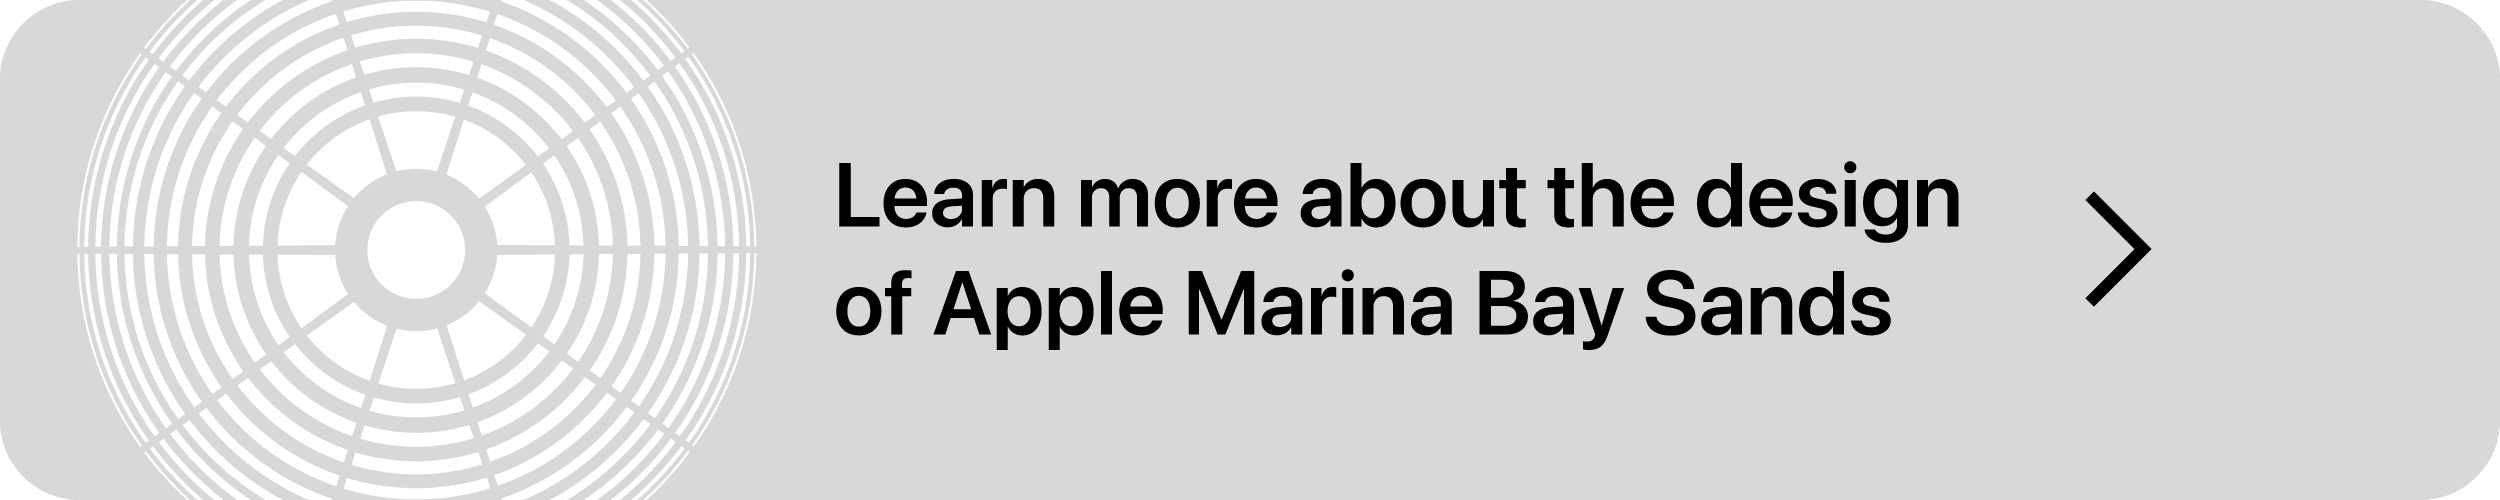 Click here to learn more about the Apple Marina Bay Sands design